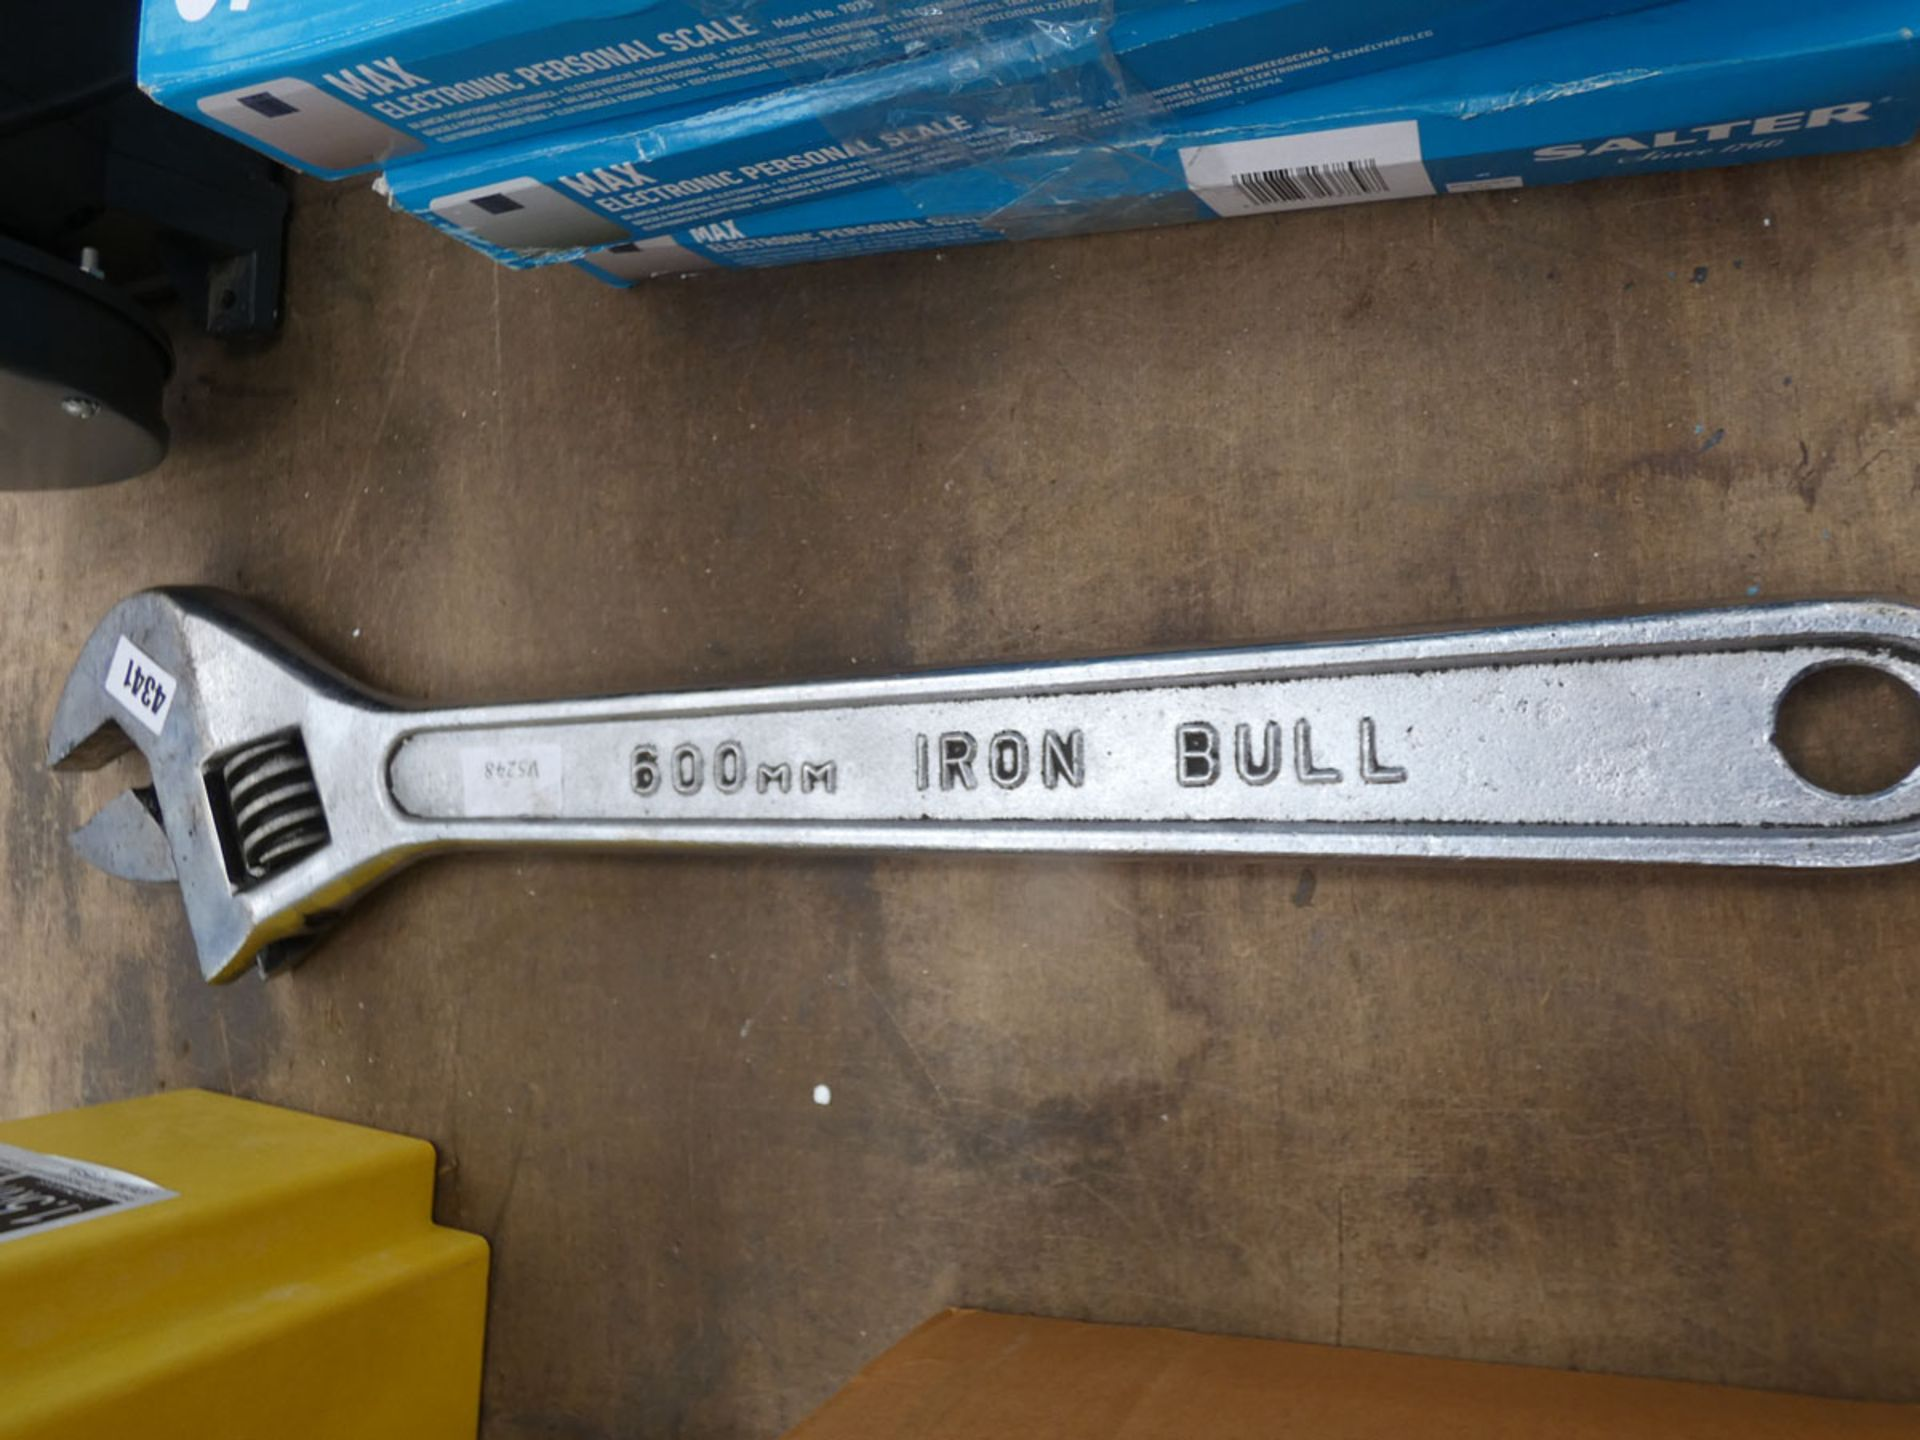 600 mm Iron bull adjustable iron spanner